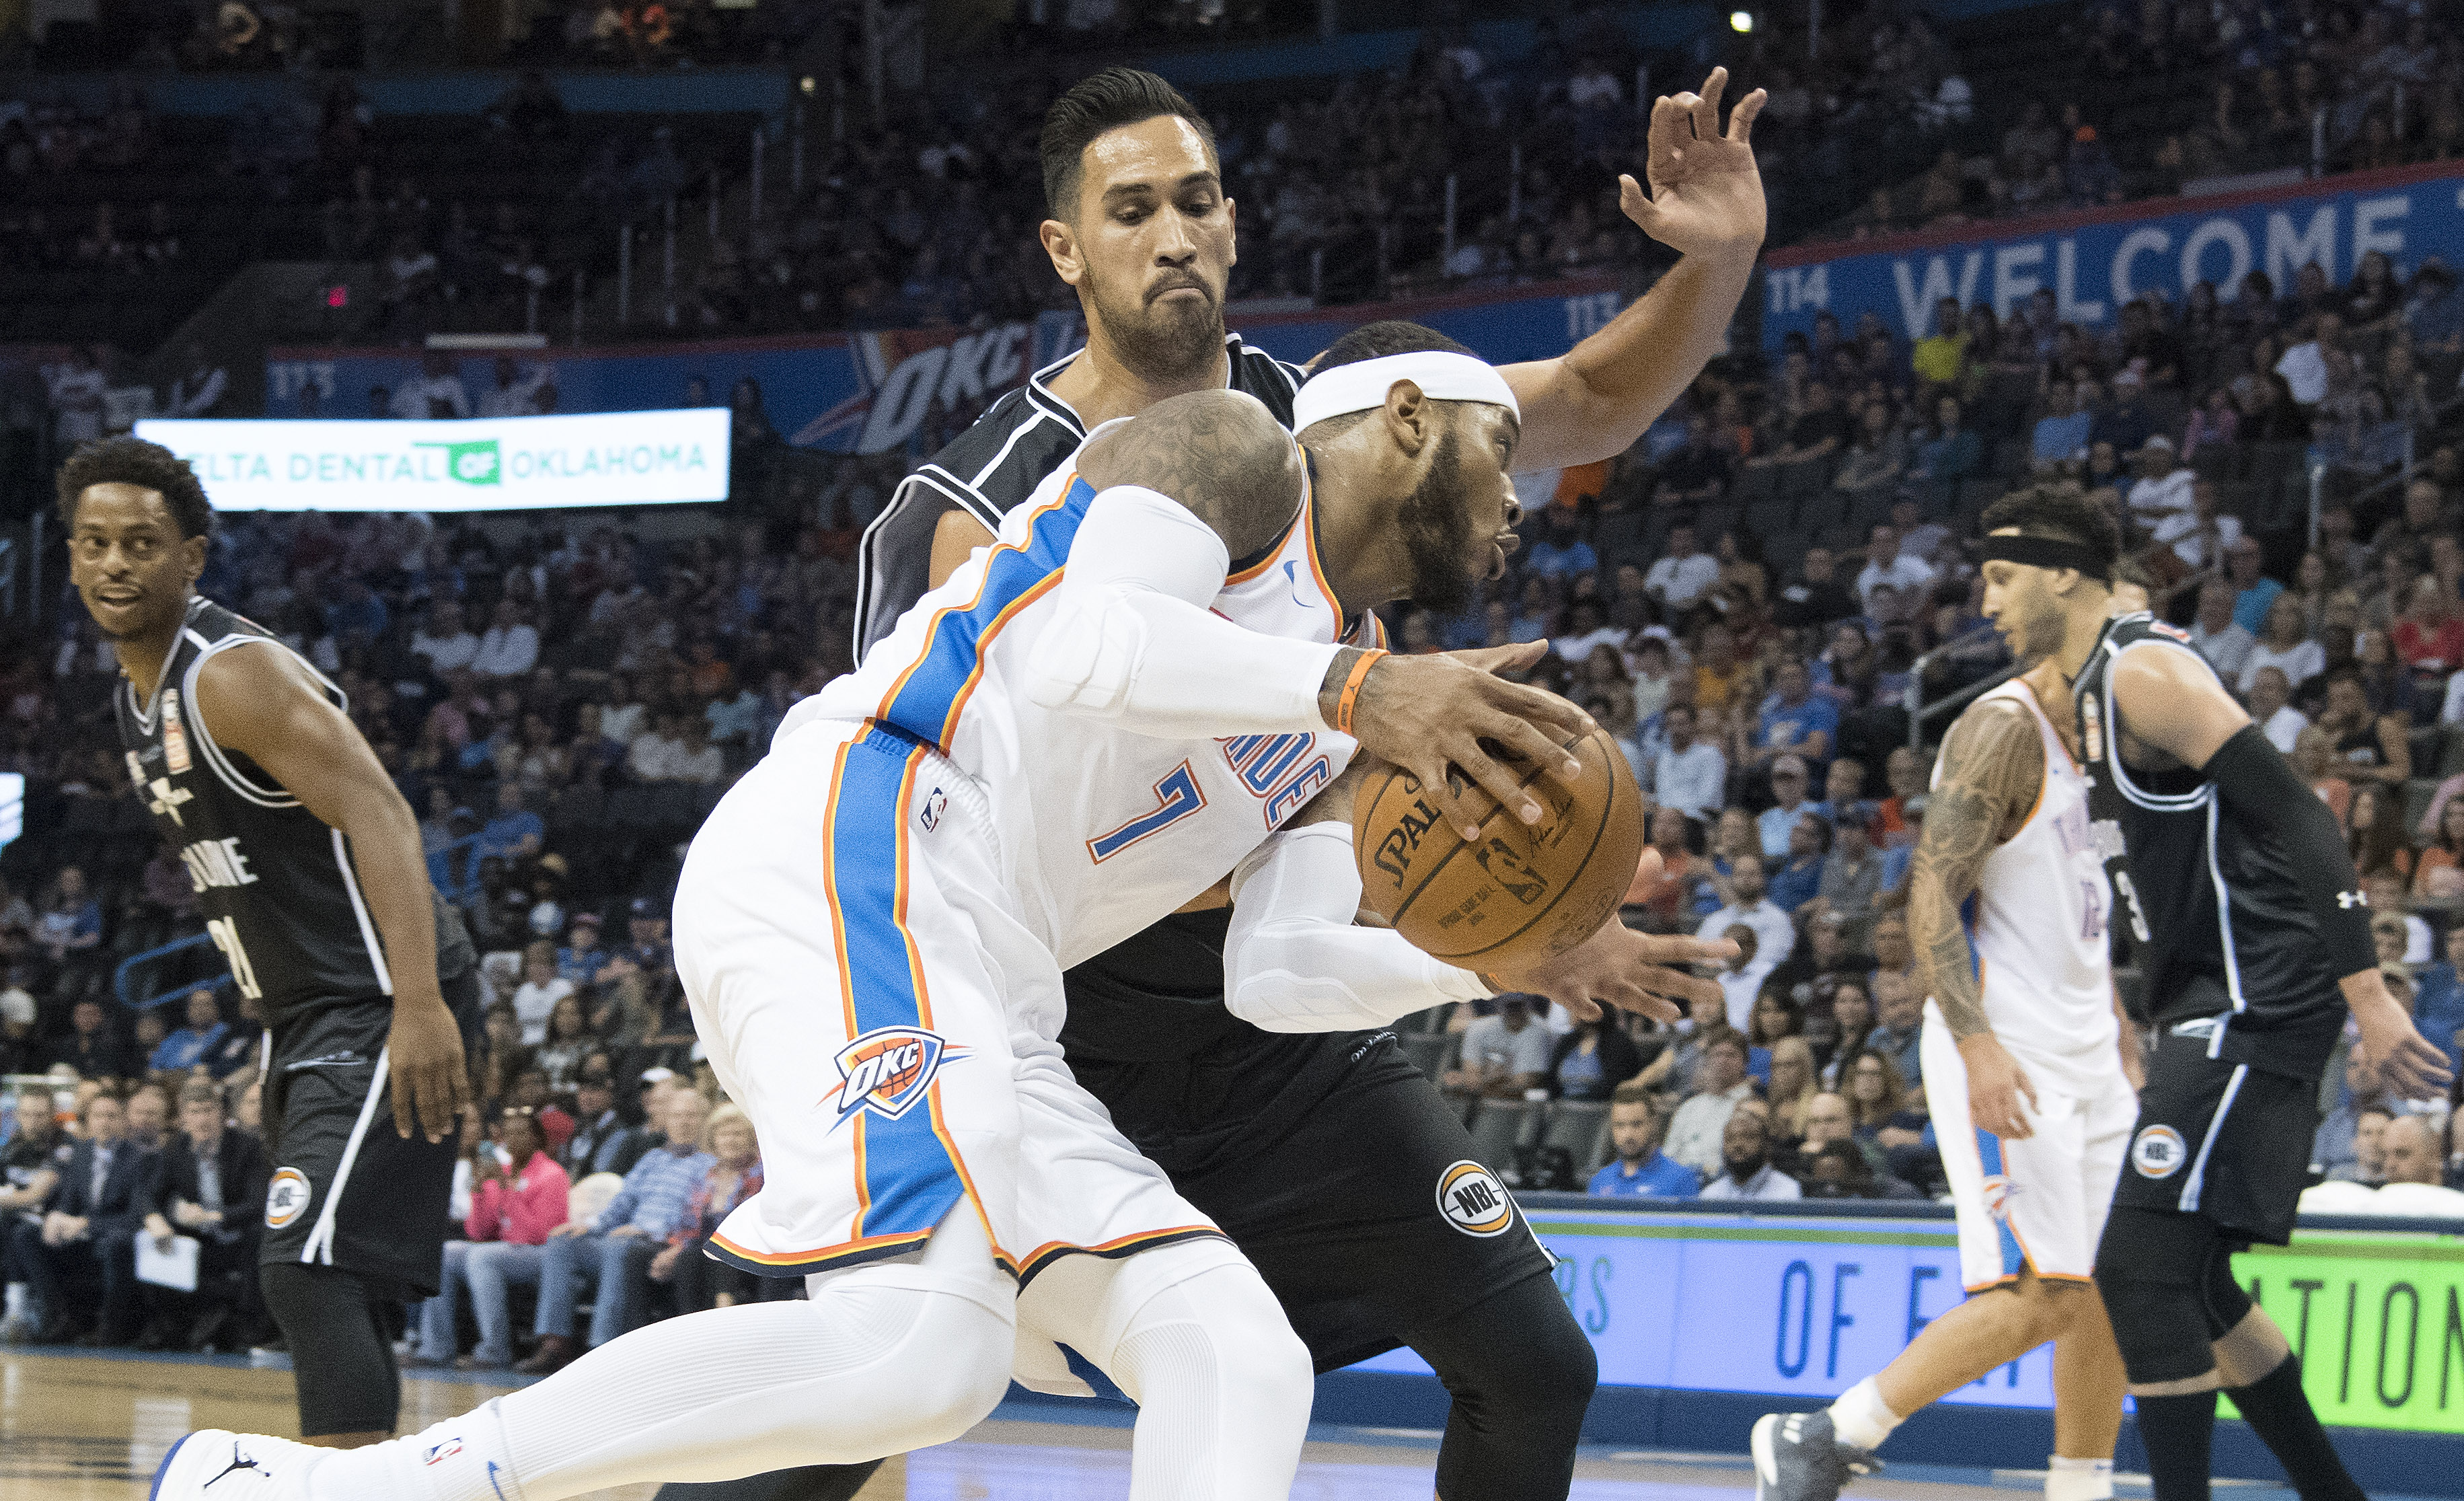 Five takeaways from okc thunder win against melbourne united page 3 oklahoma city ok october 8 carmelo anthony 7 of the okc thunder drives around tai wesley of melbourne united in the first half of a nba preseason game prinsesfo Images